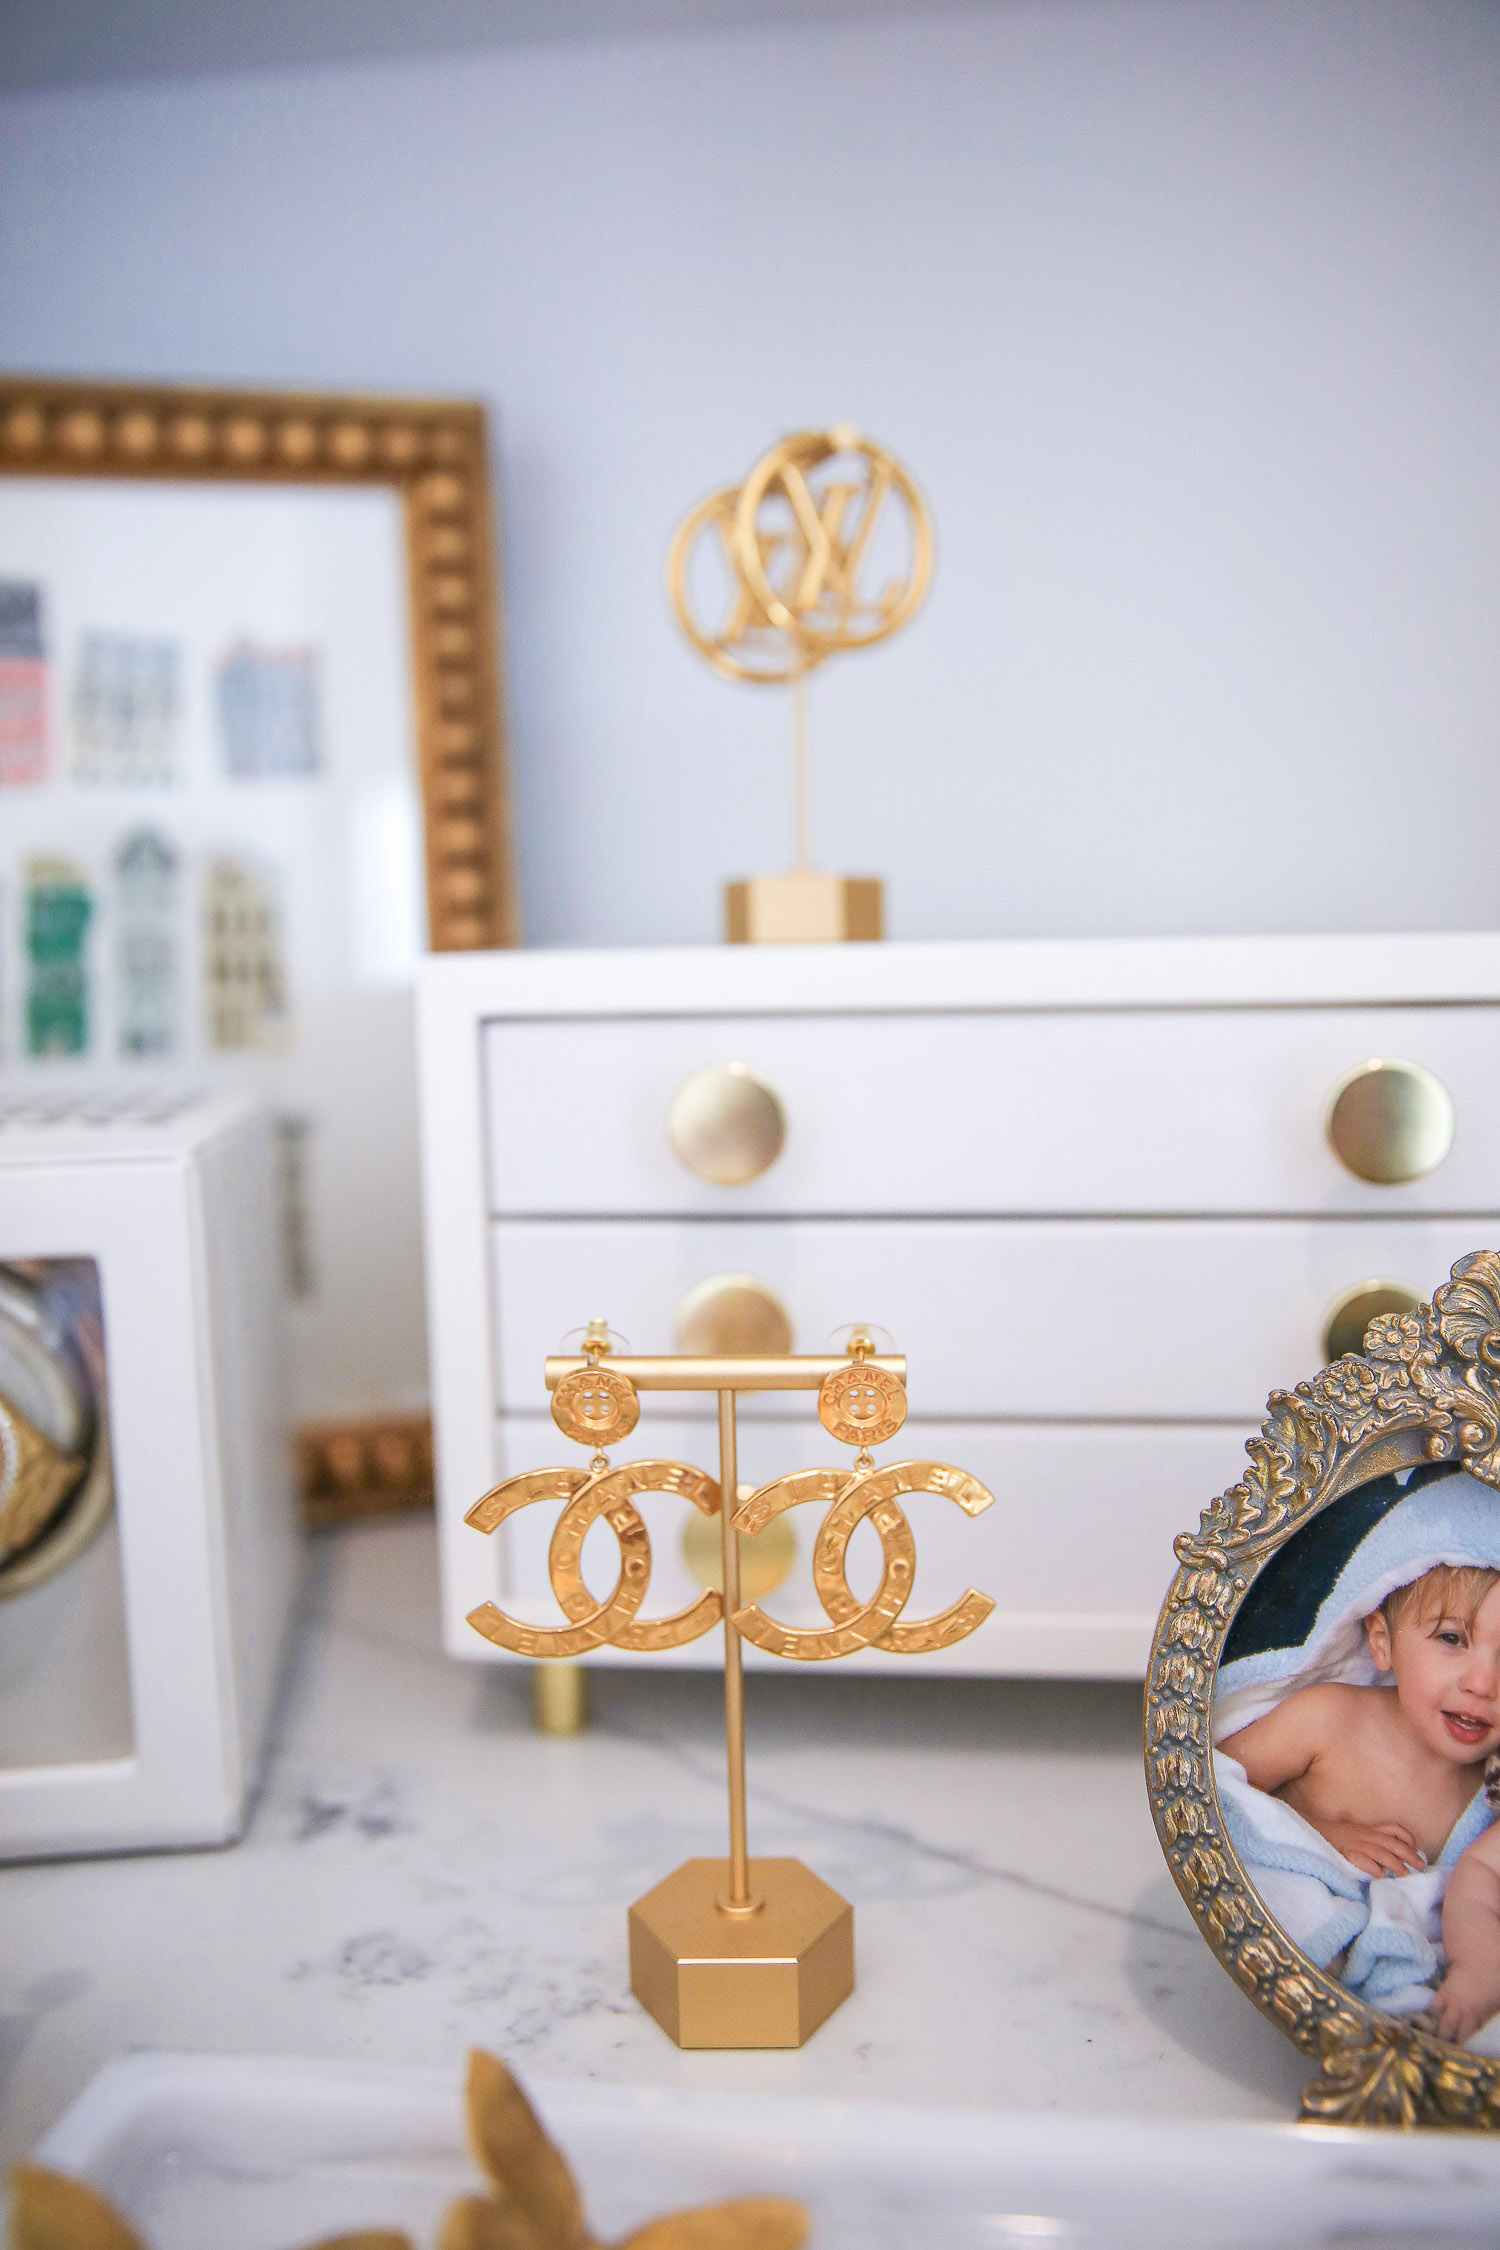 Amazon must haves jewelry holder, gold earring stands amazon, Emily Gemma amazon store, Chanel gold button earrings spring 2021, designer jewelry collection |Amazon Must Haves by popular US life and style blog, The Sweetest Thing: image of gold picture frames, gold jewelry holders, white jewelry box, pink velvet bracelet cushion, Chanel Gold button collection earrings on a gold earring stand, and gold necklace holder on a white marble counter top.